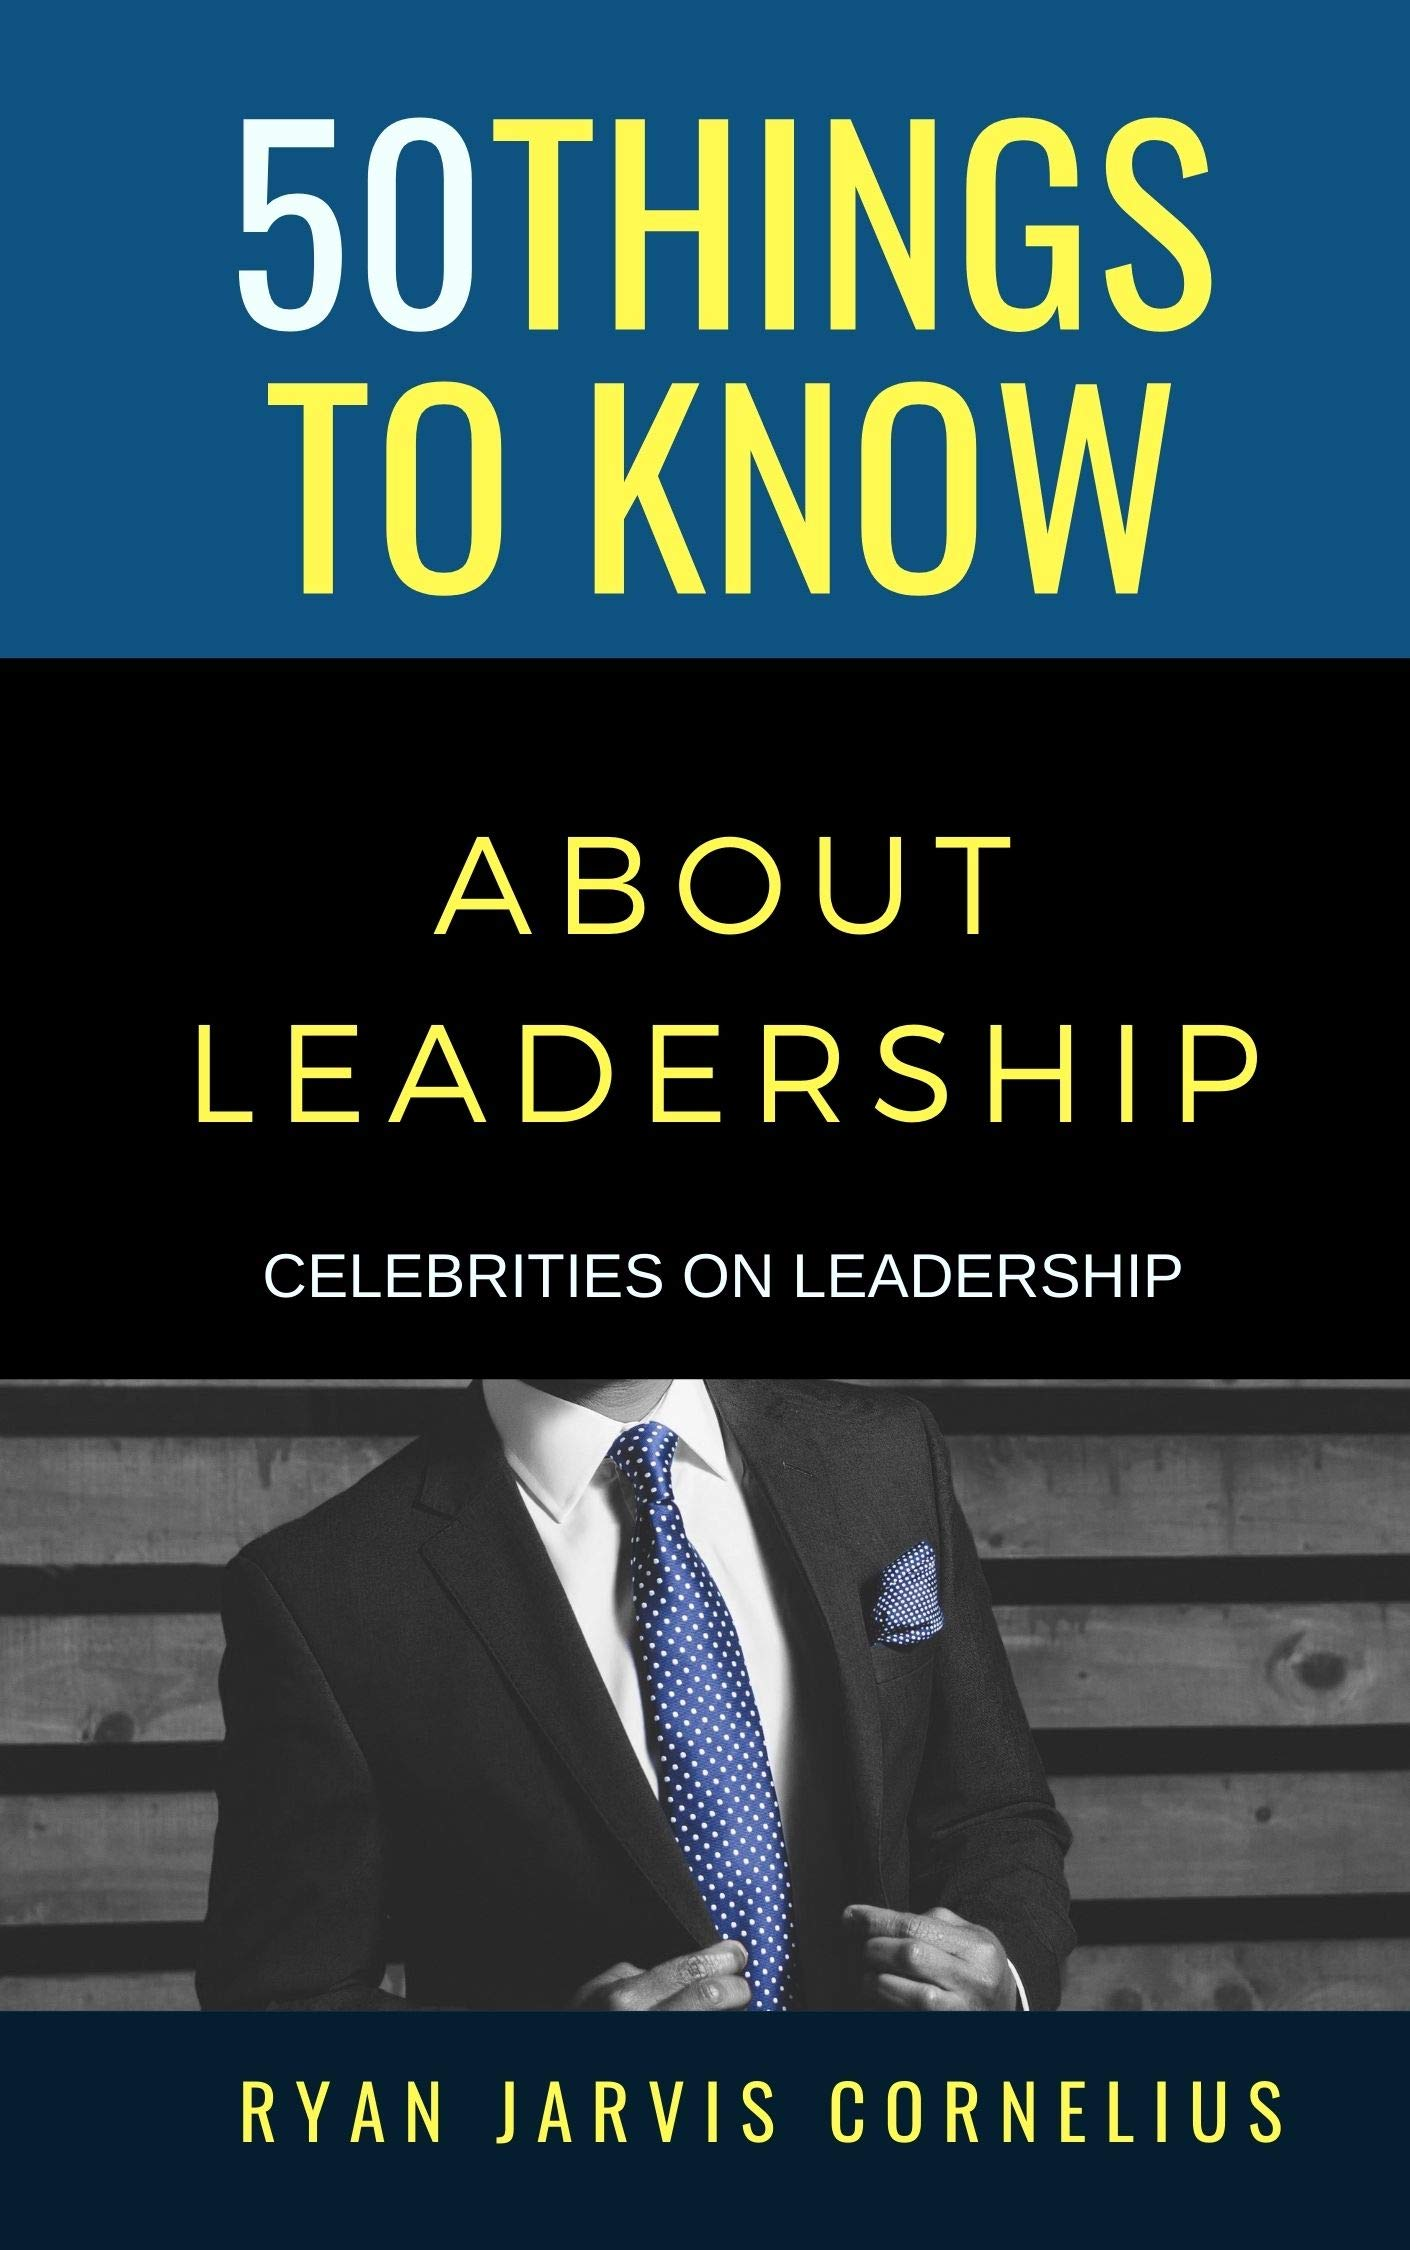 50 Things to Know About Leadership: Celebrities on Leadership (50 Things to Know Career)